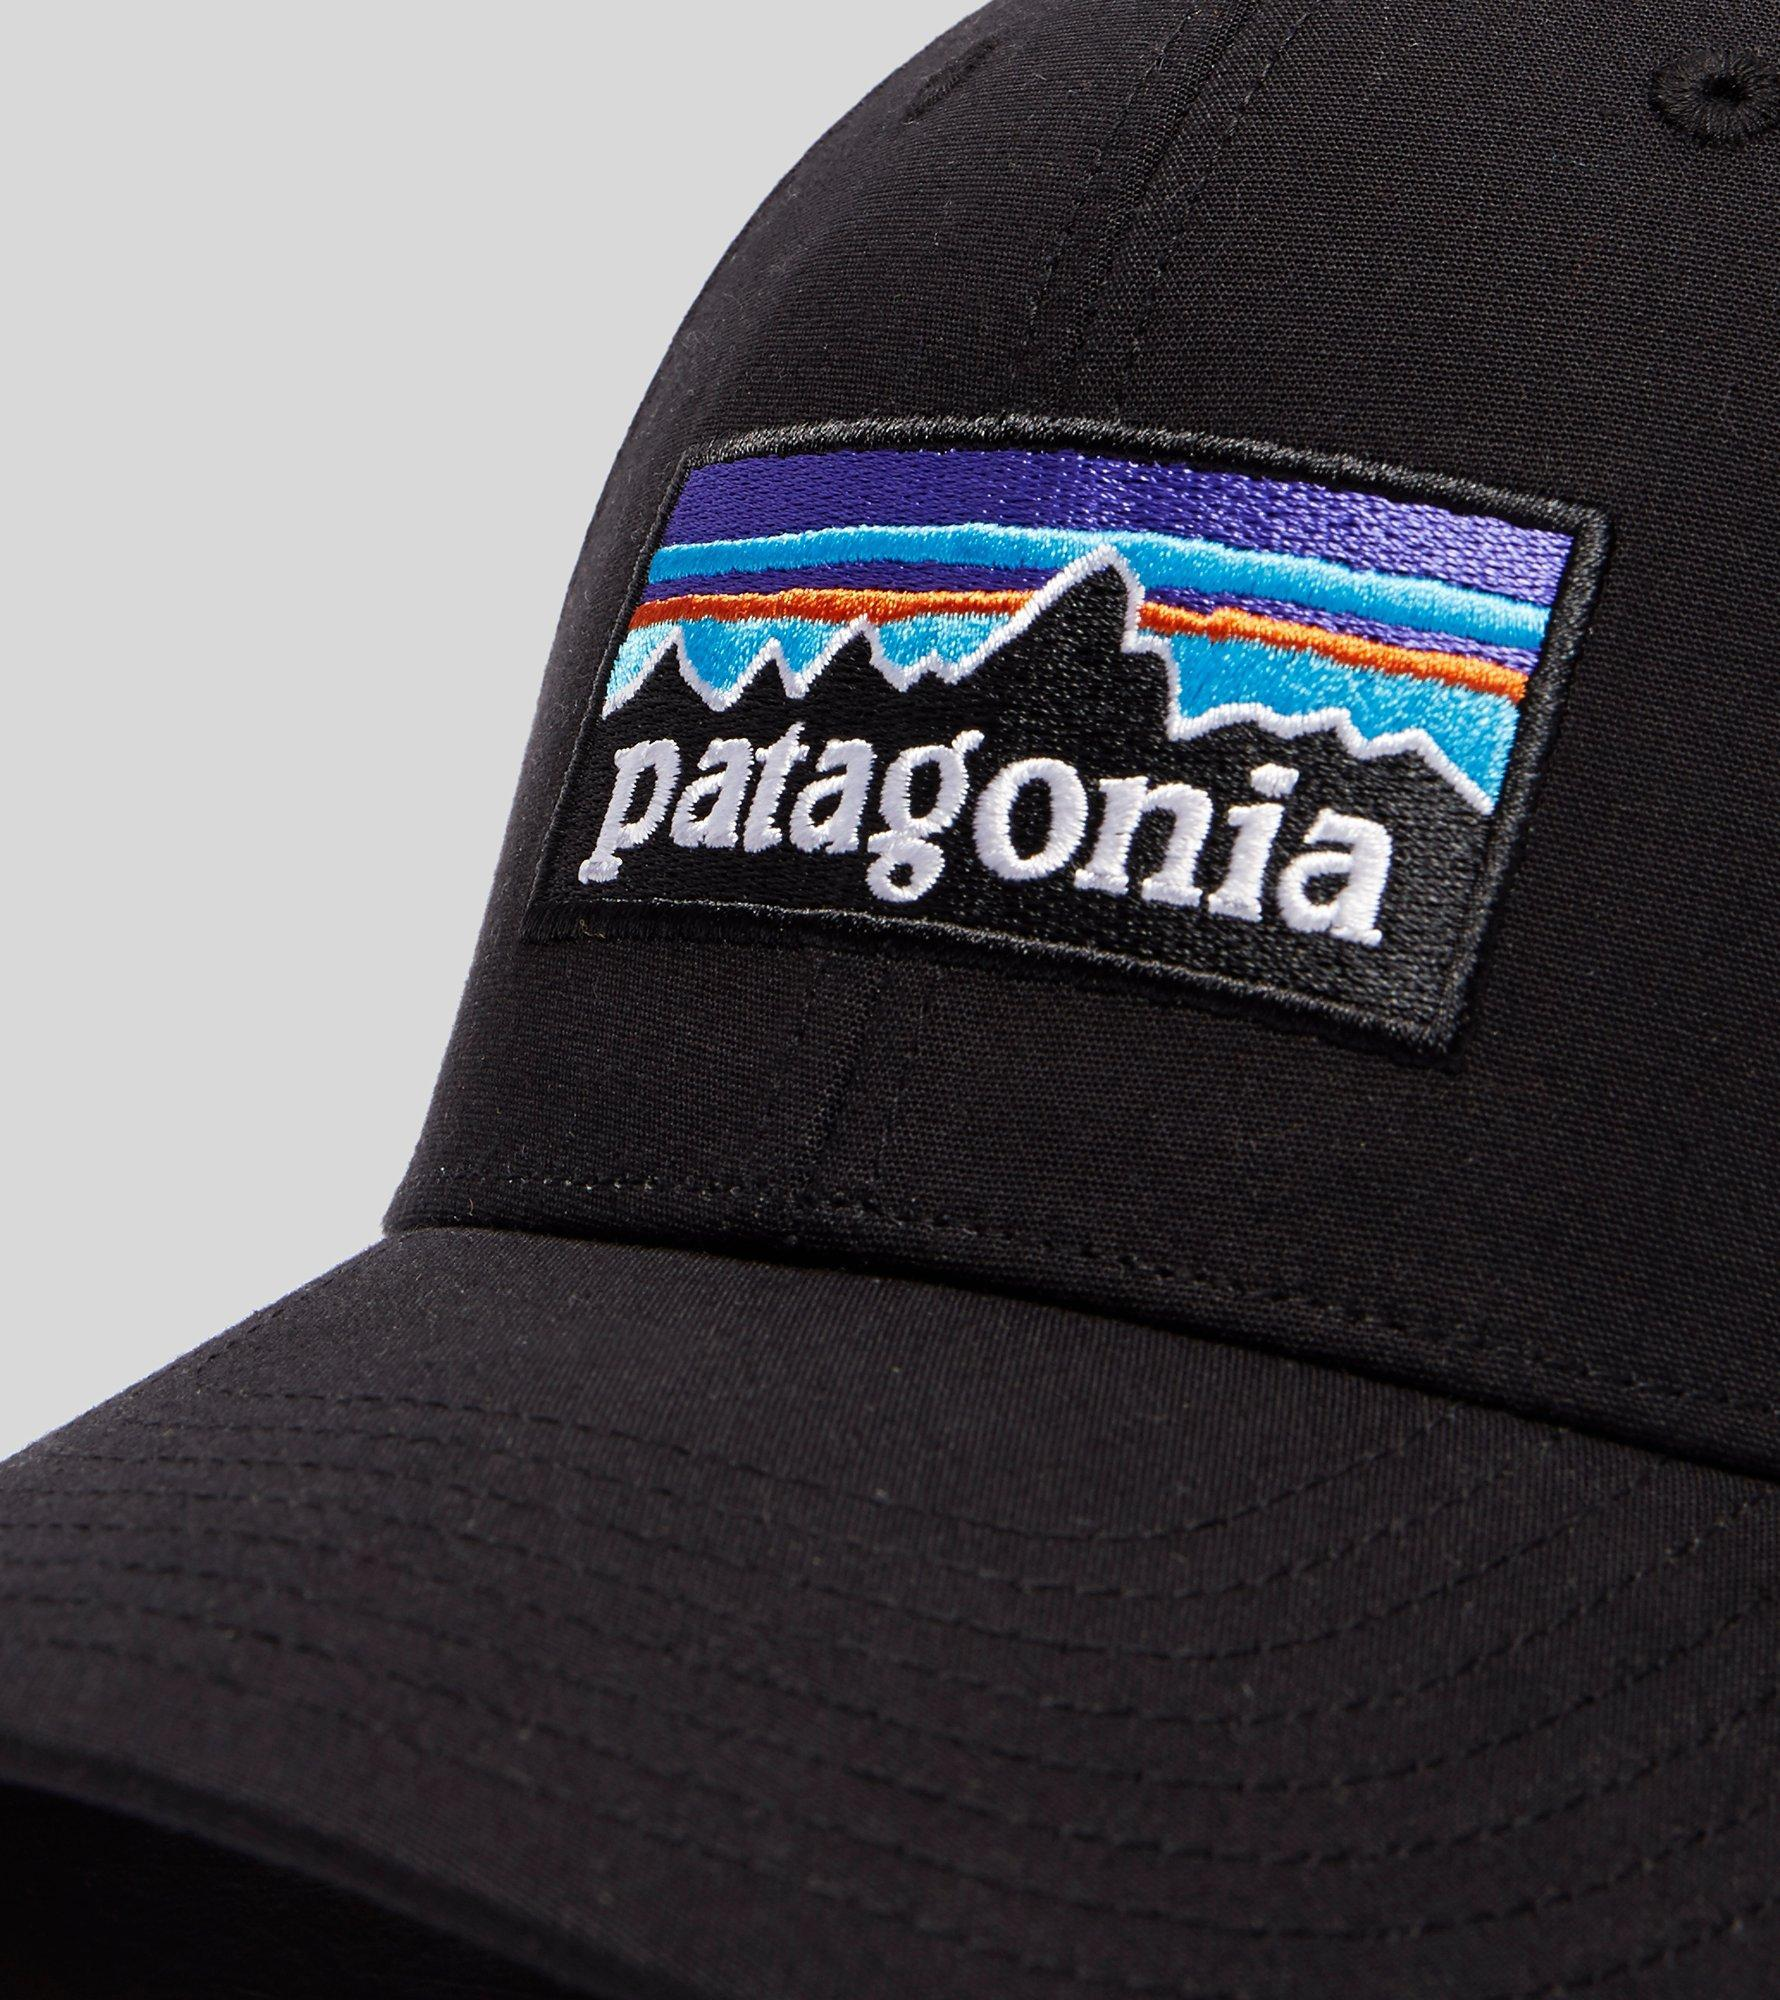 Lyst - Patagonia P-6 Stretch Fitted Cap in Black for Men 3e90bac618db